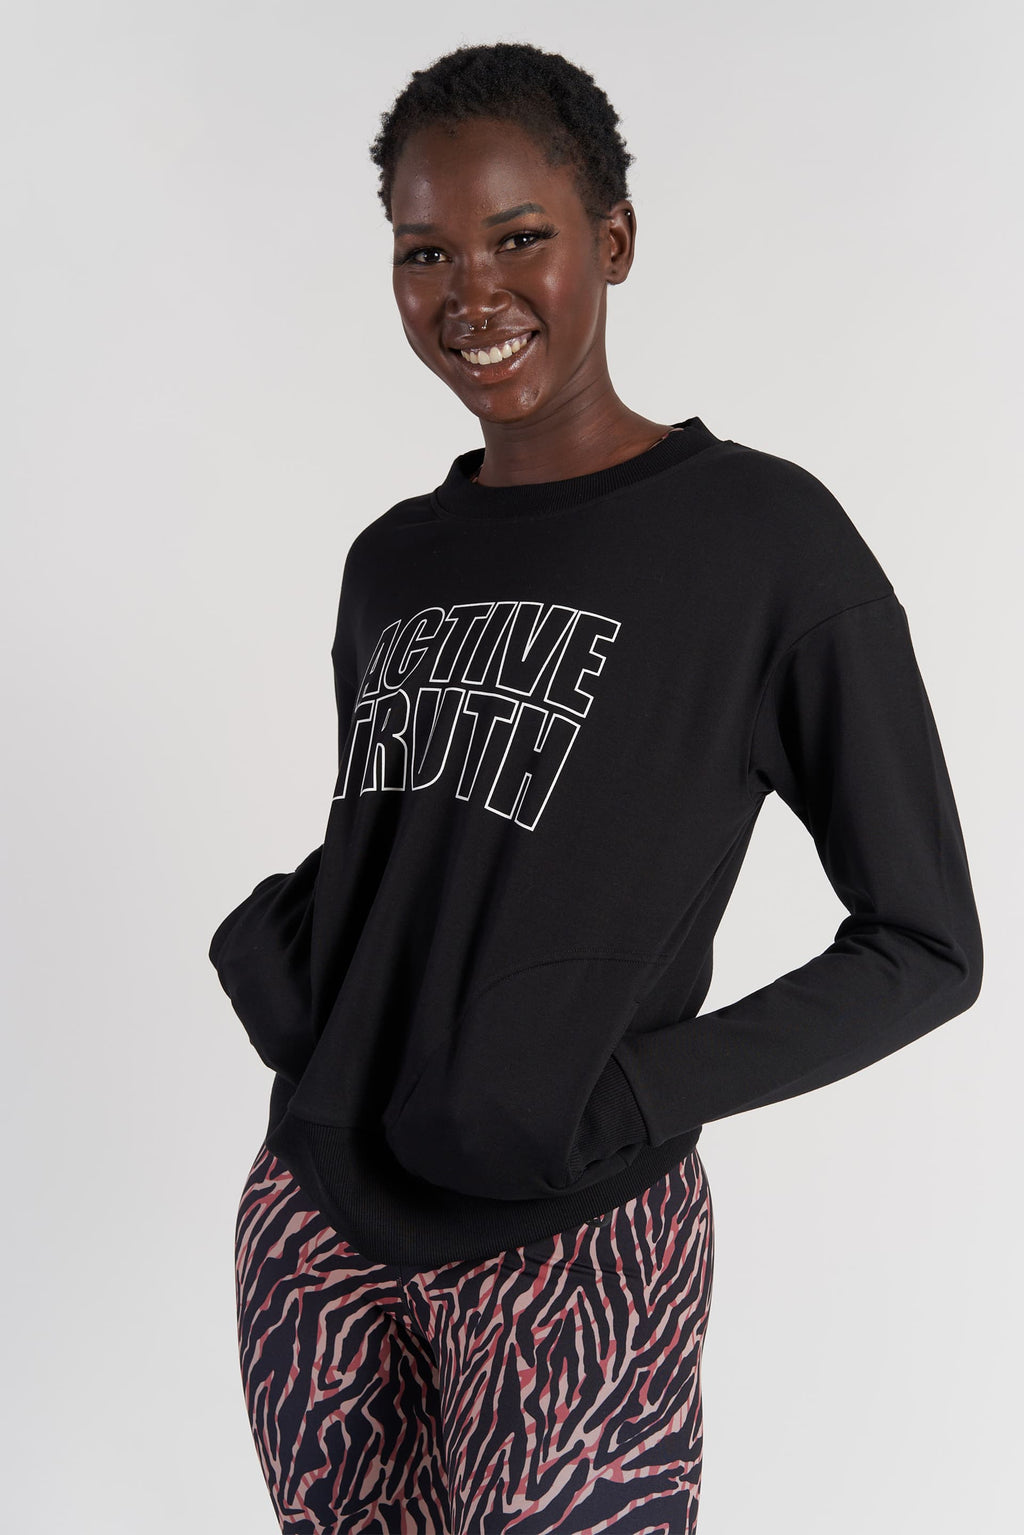 Studio Sweatshirt - Black from Active Truth USA